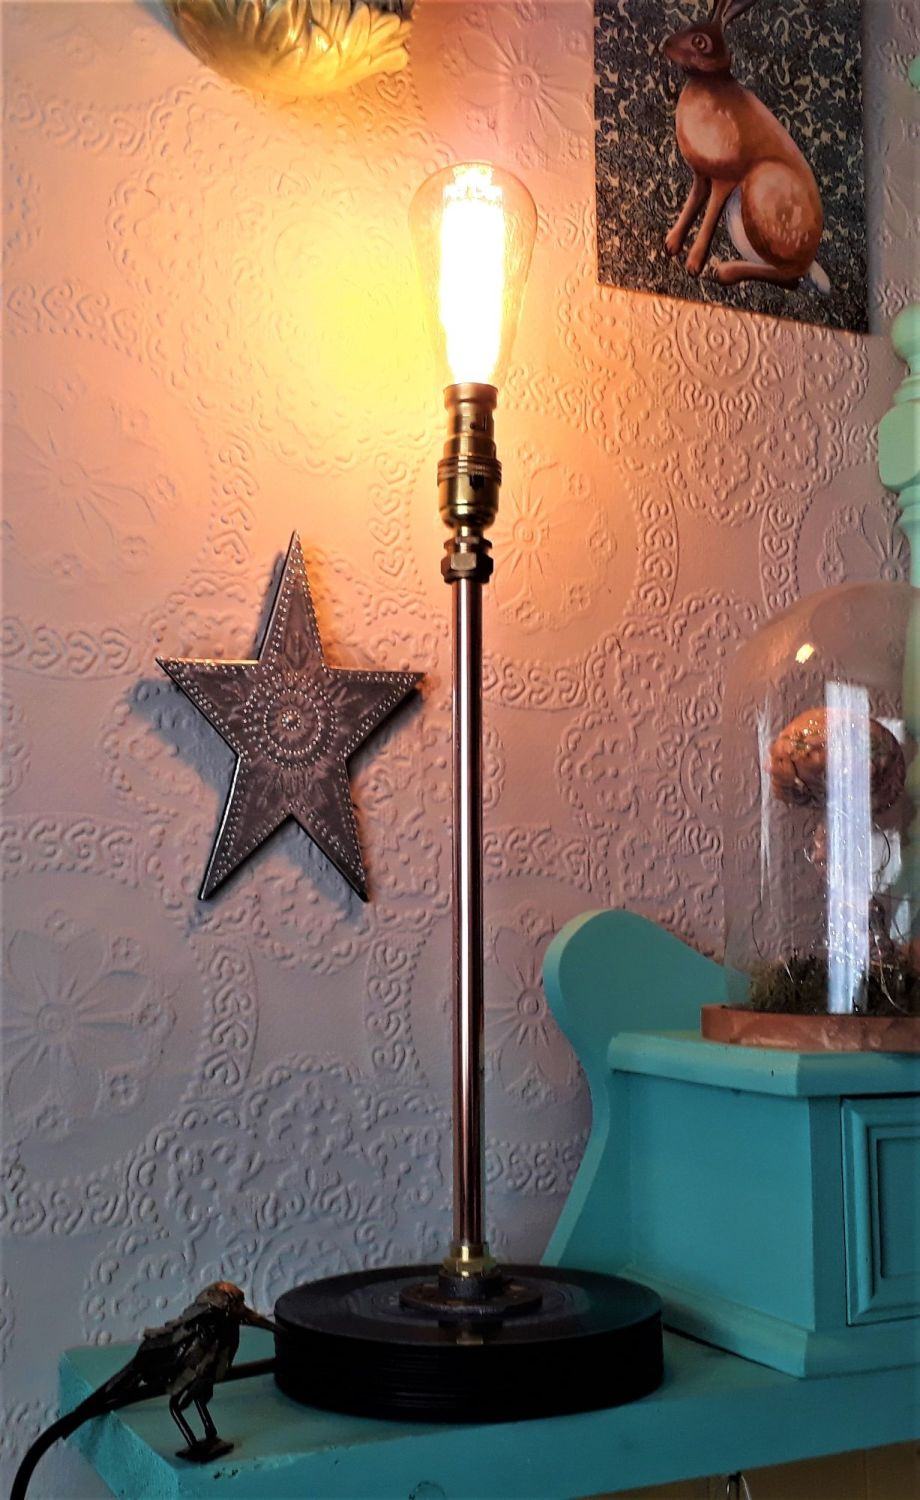 Upright Copper Table Lamp With Upcycled Record Base.